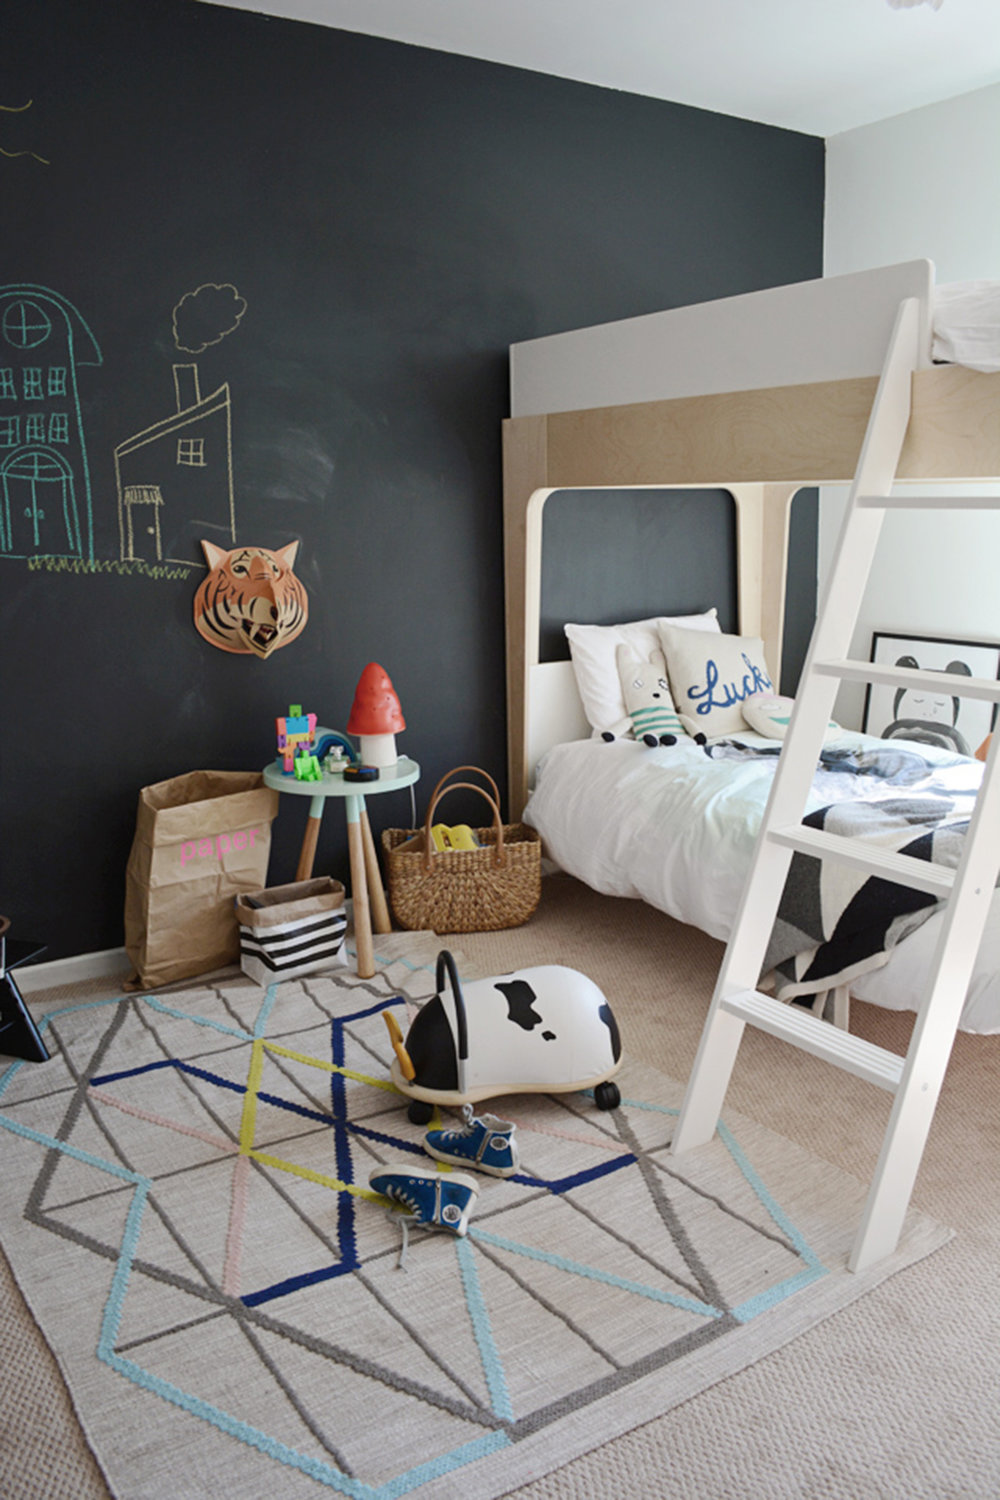 oeuf bunk bed in kids room with chalkboard wall